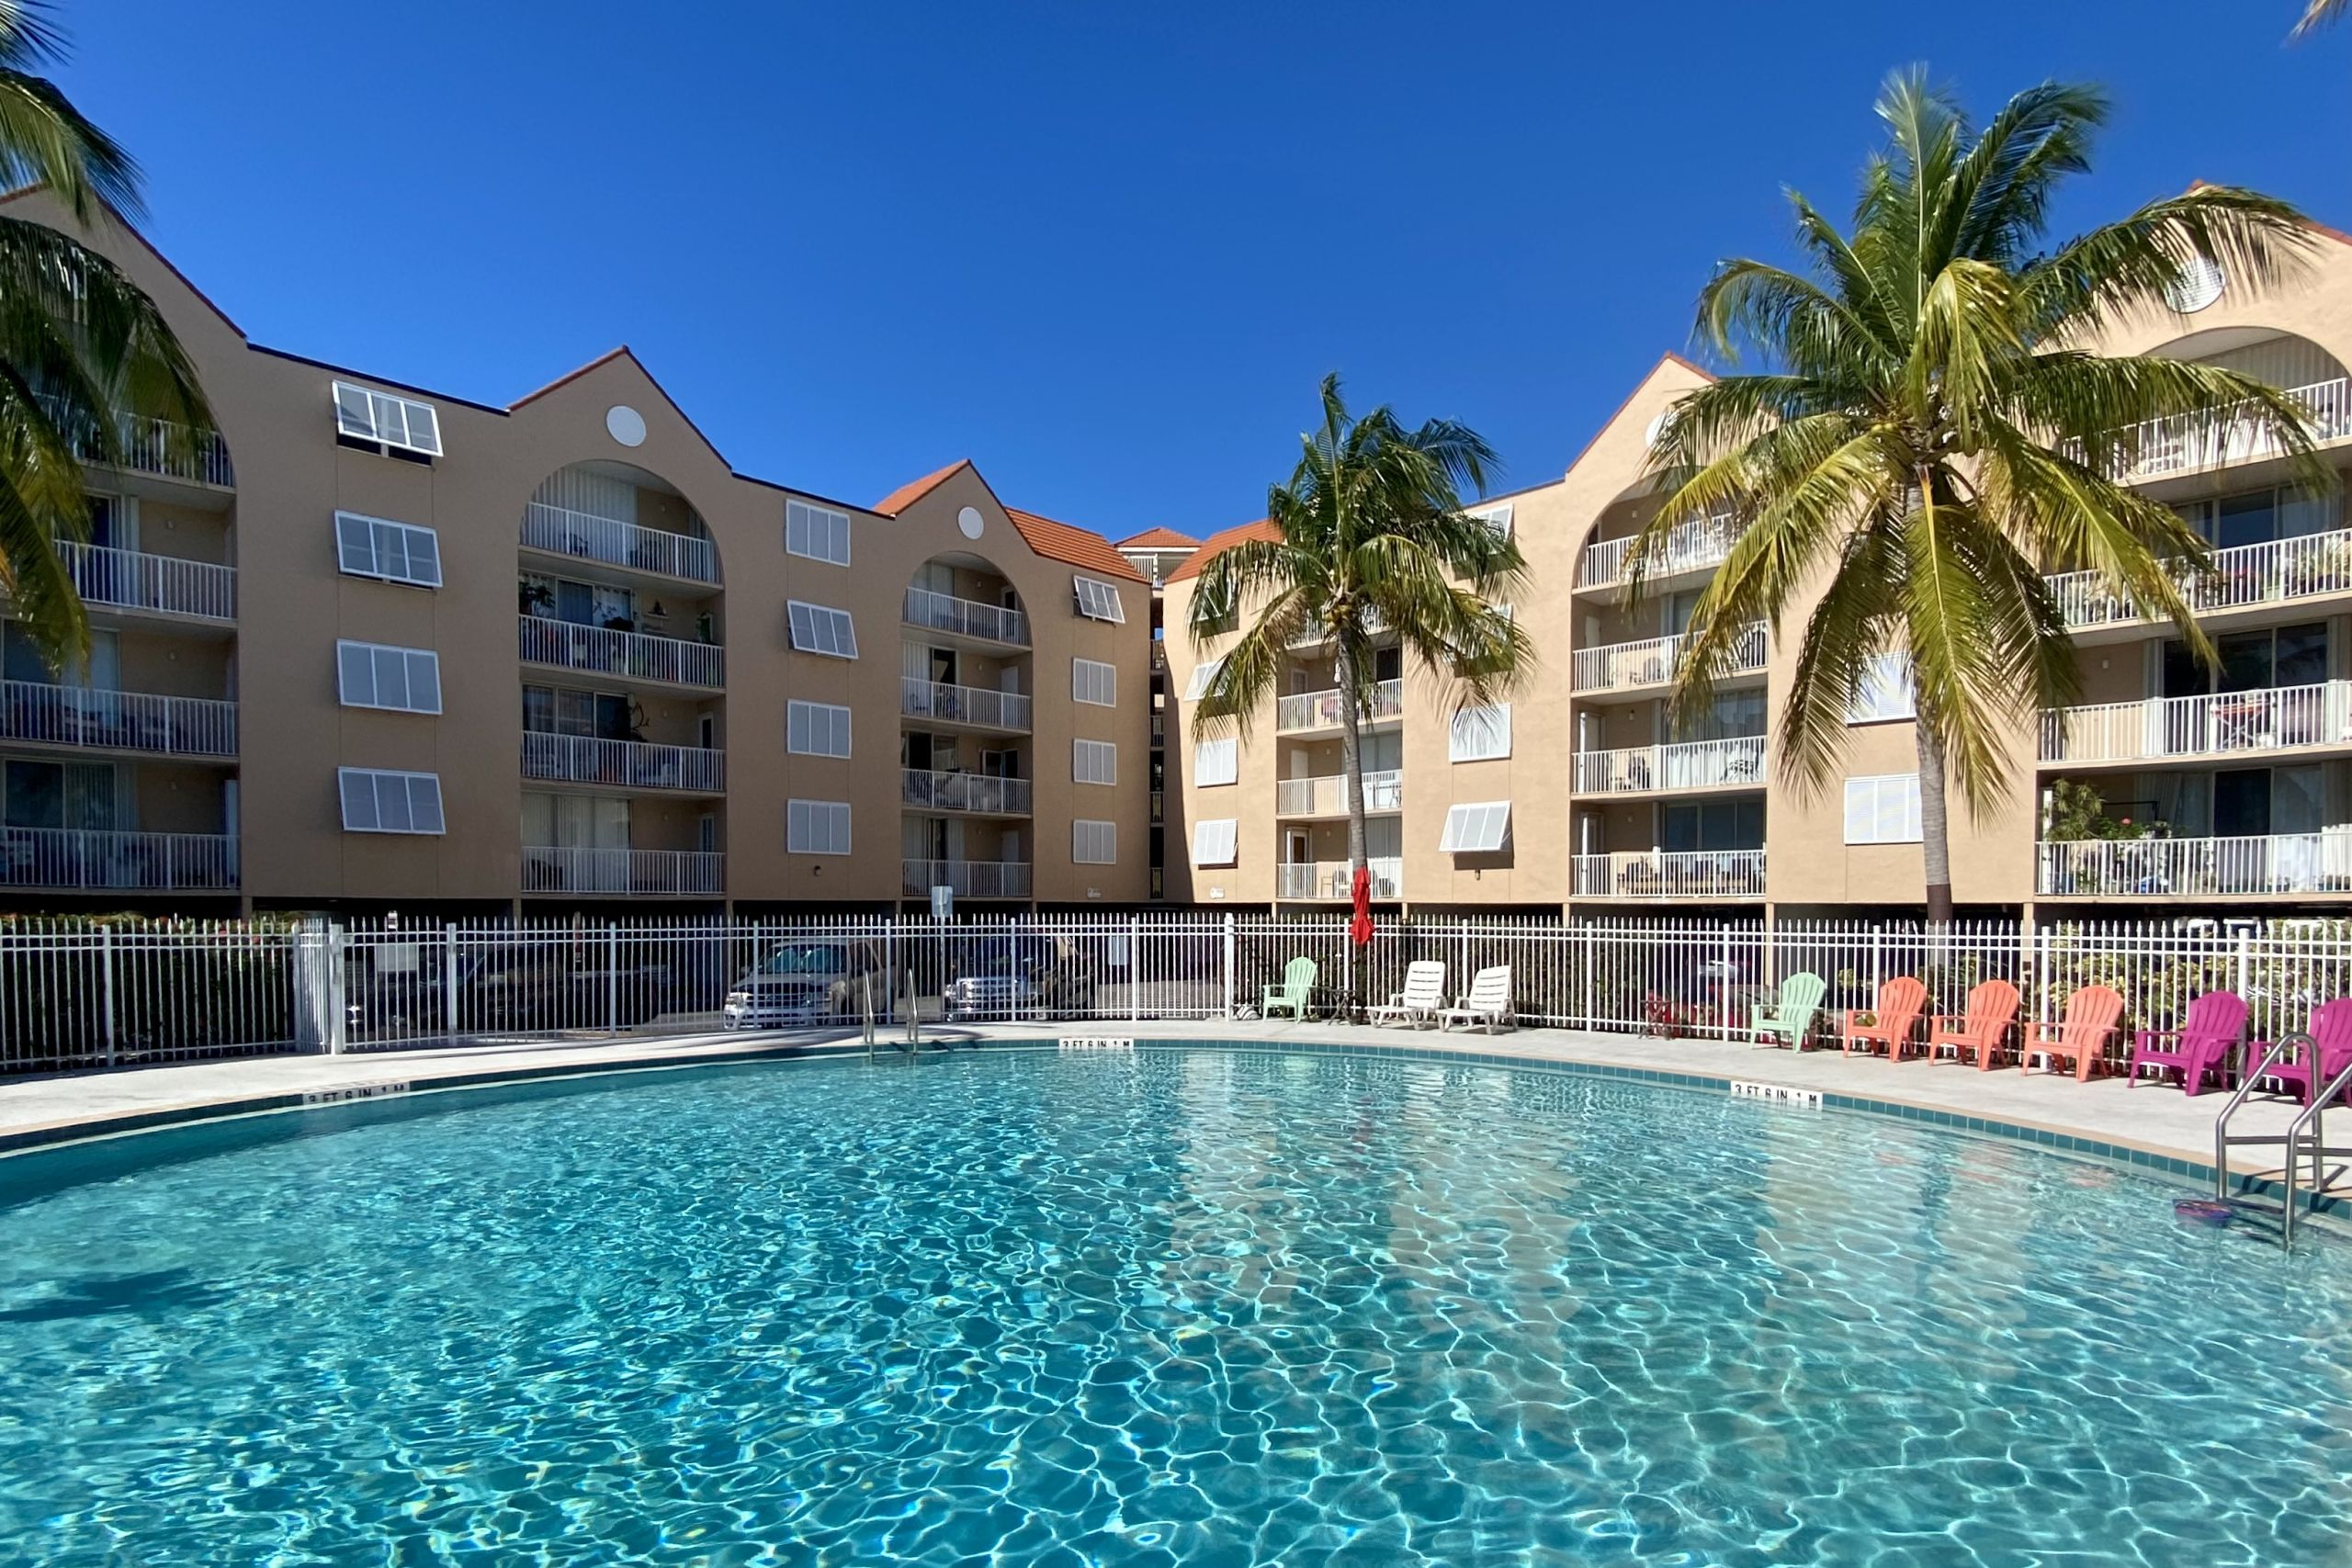 Just Listed - Best Priced 3 BR in Key West